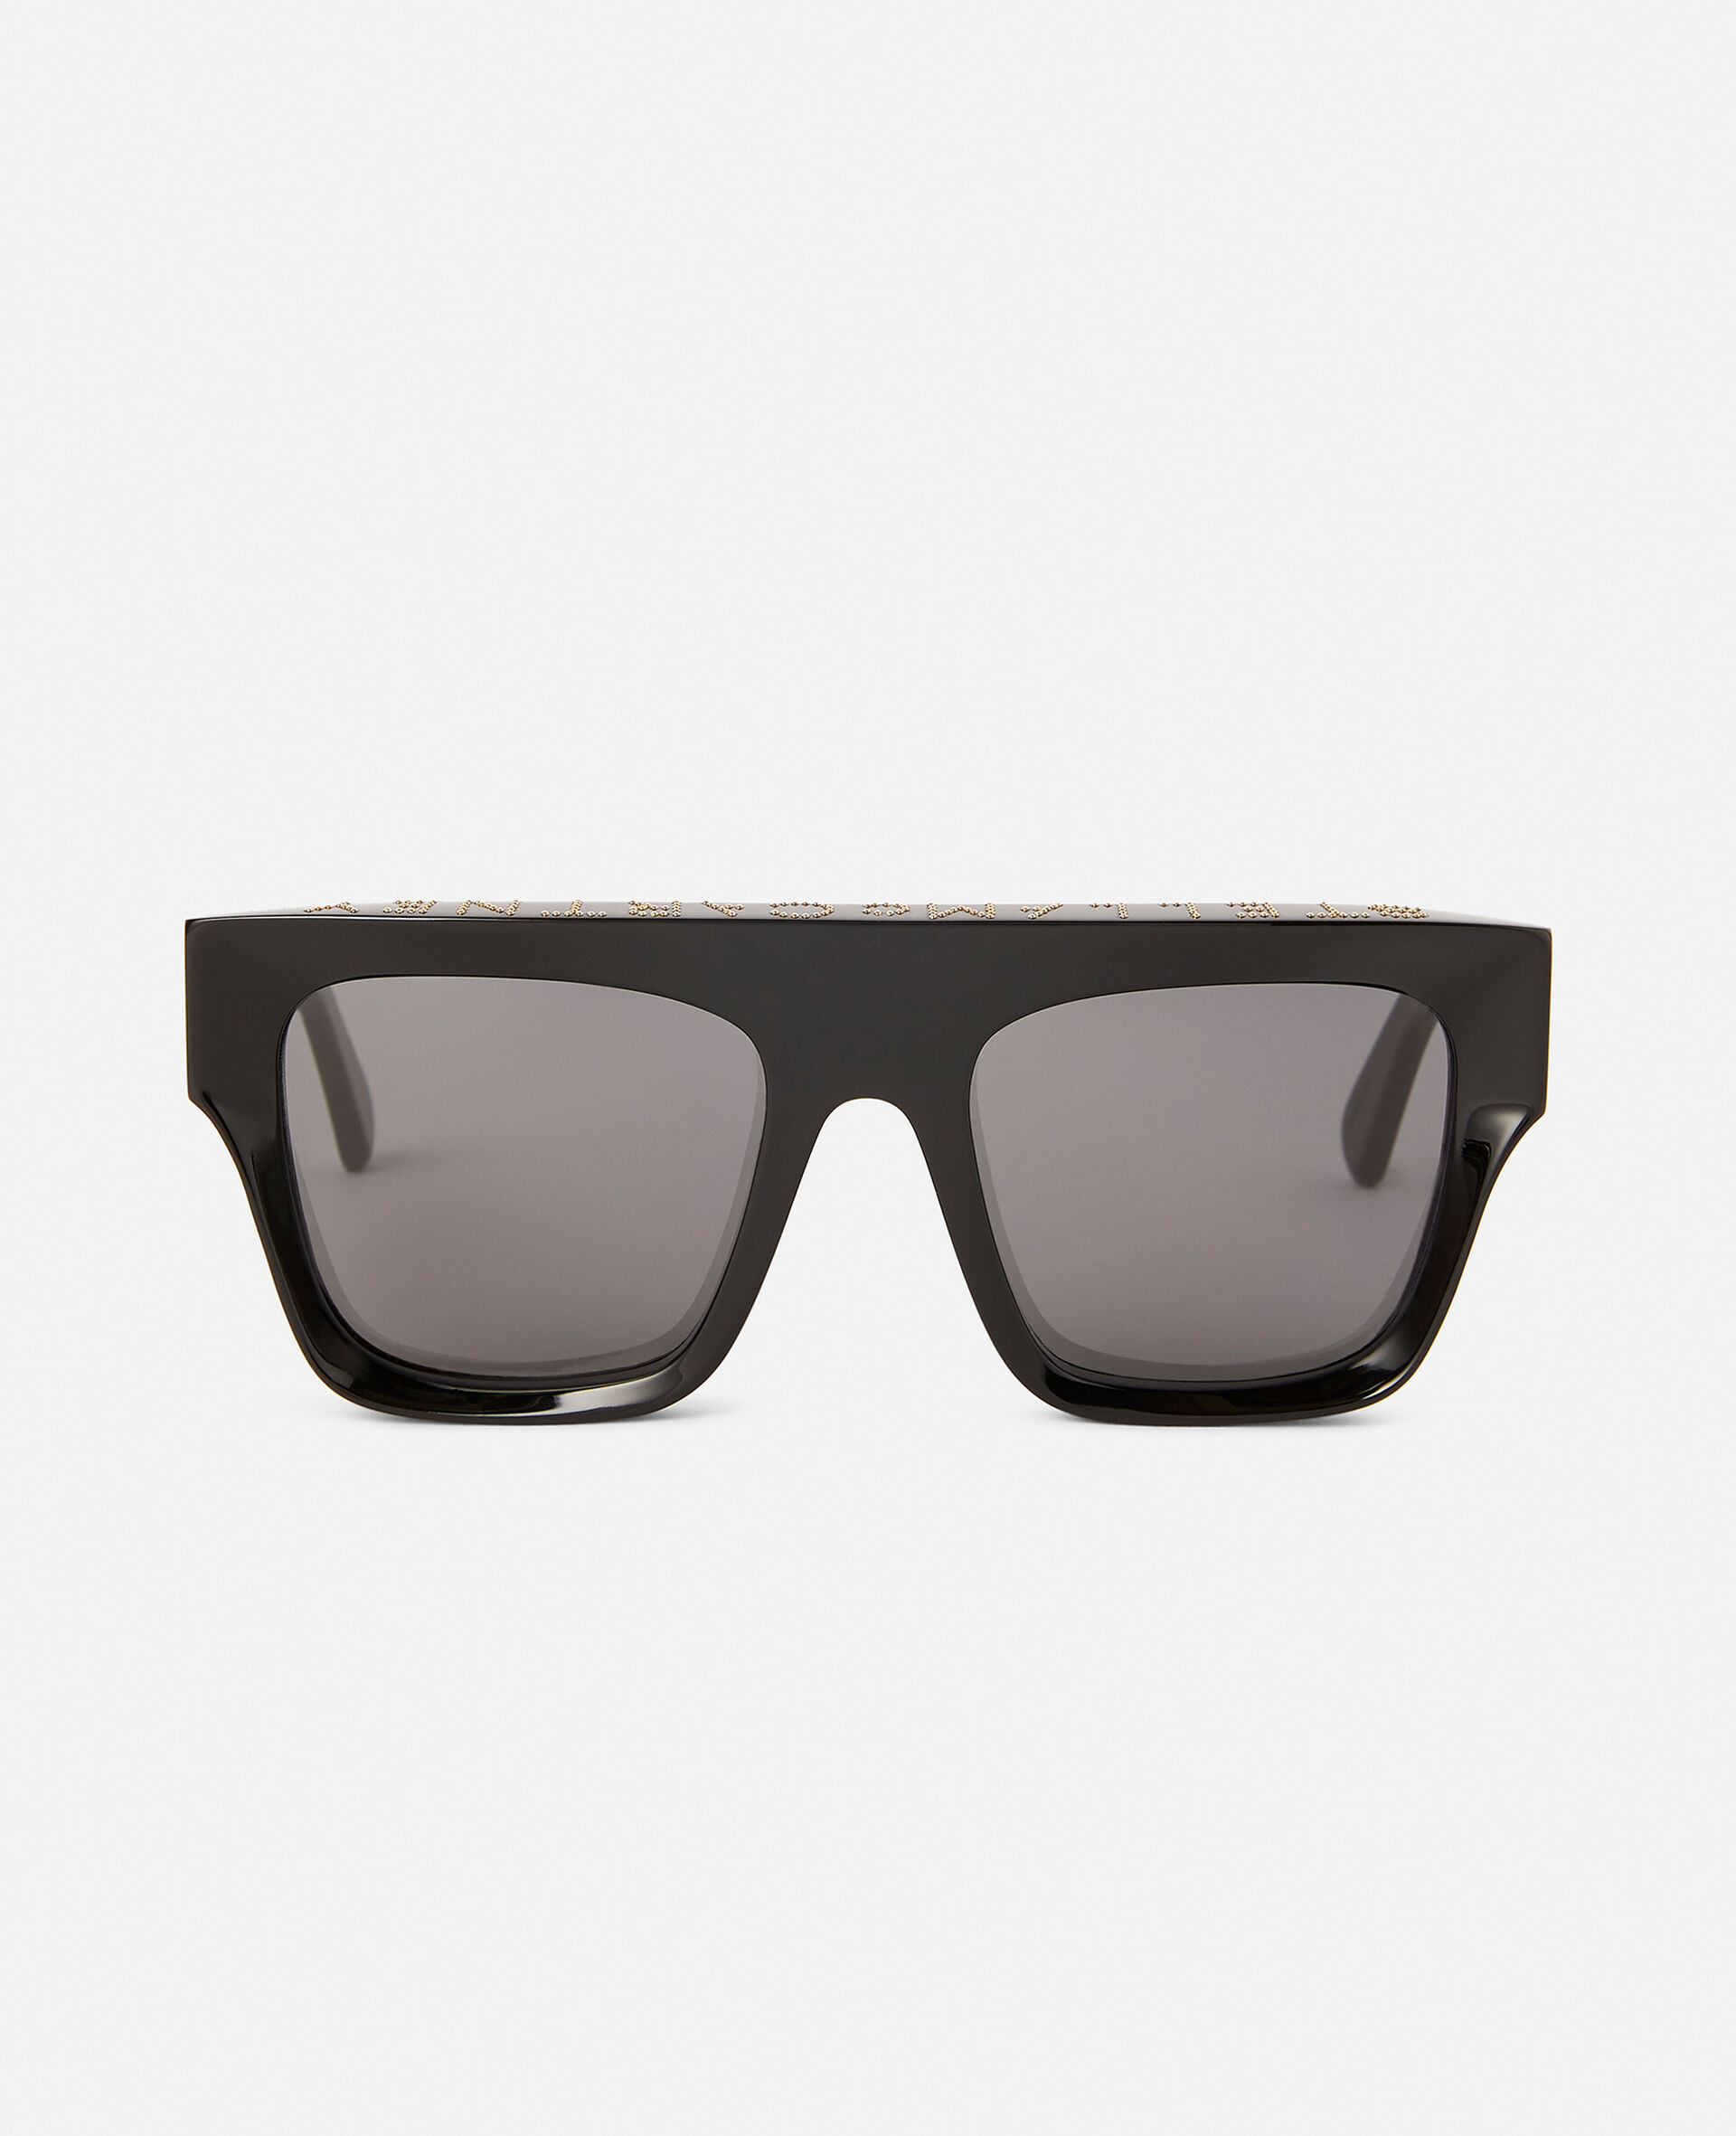 Shiny Black Square Sunglasses-Black-large image number 2